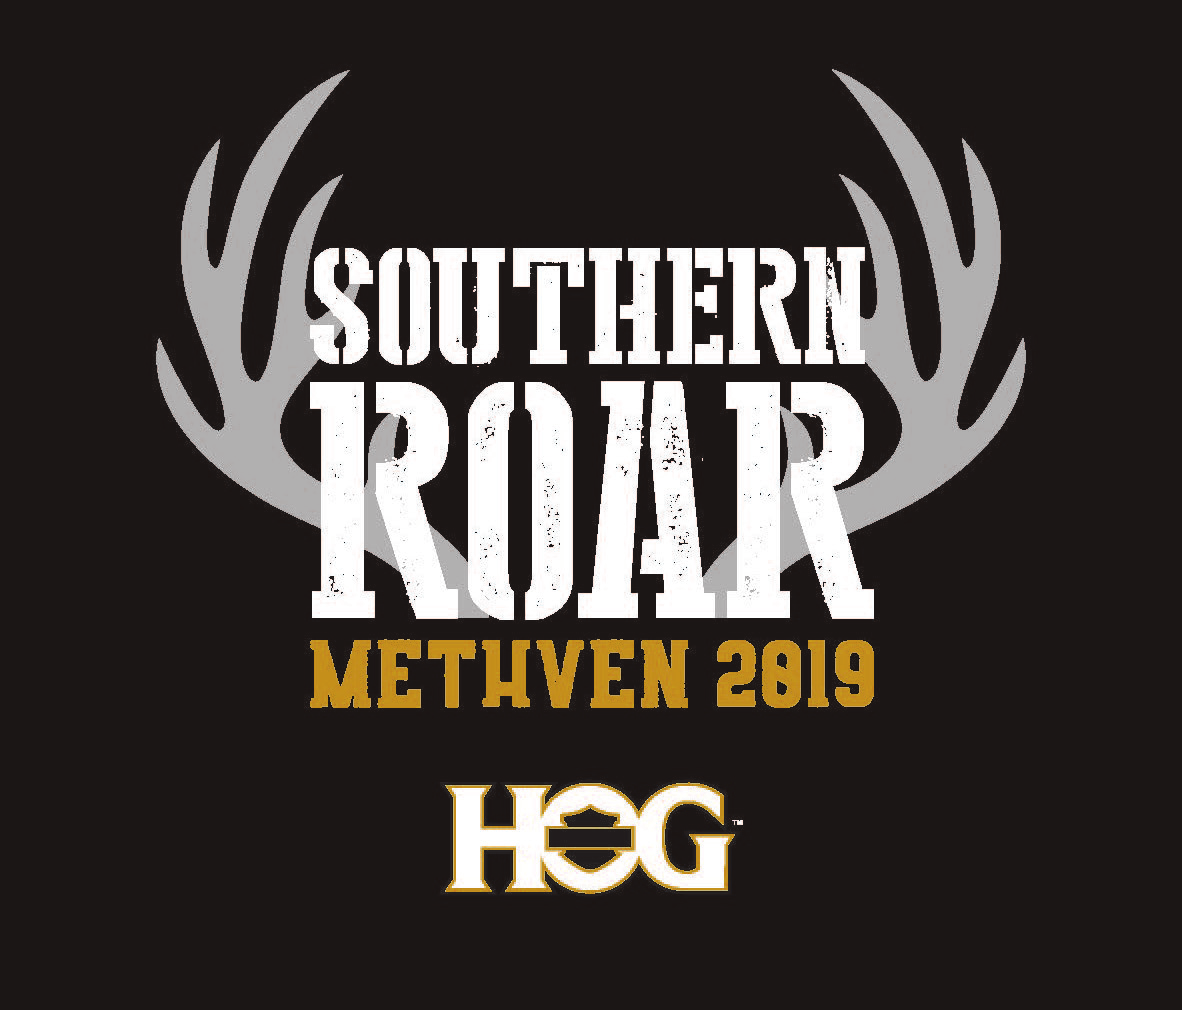 I hope everyone is having a great time at the southern roar. Just a wee reminder that it's dress up on Saturday night. See you all in your Halloween costumes.